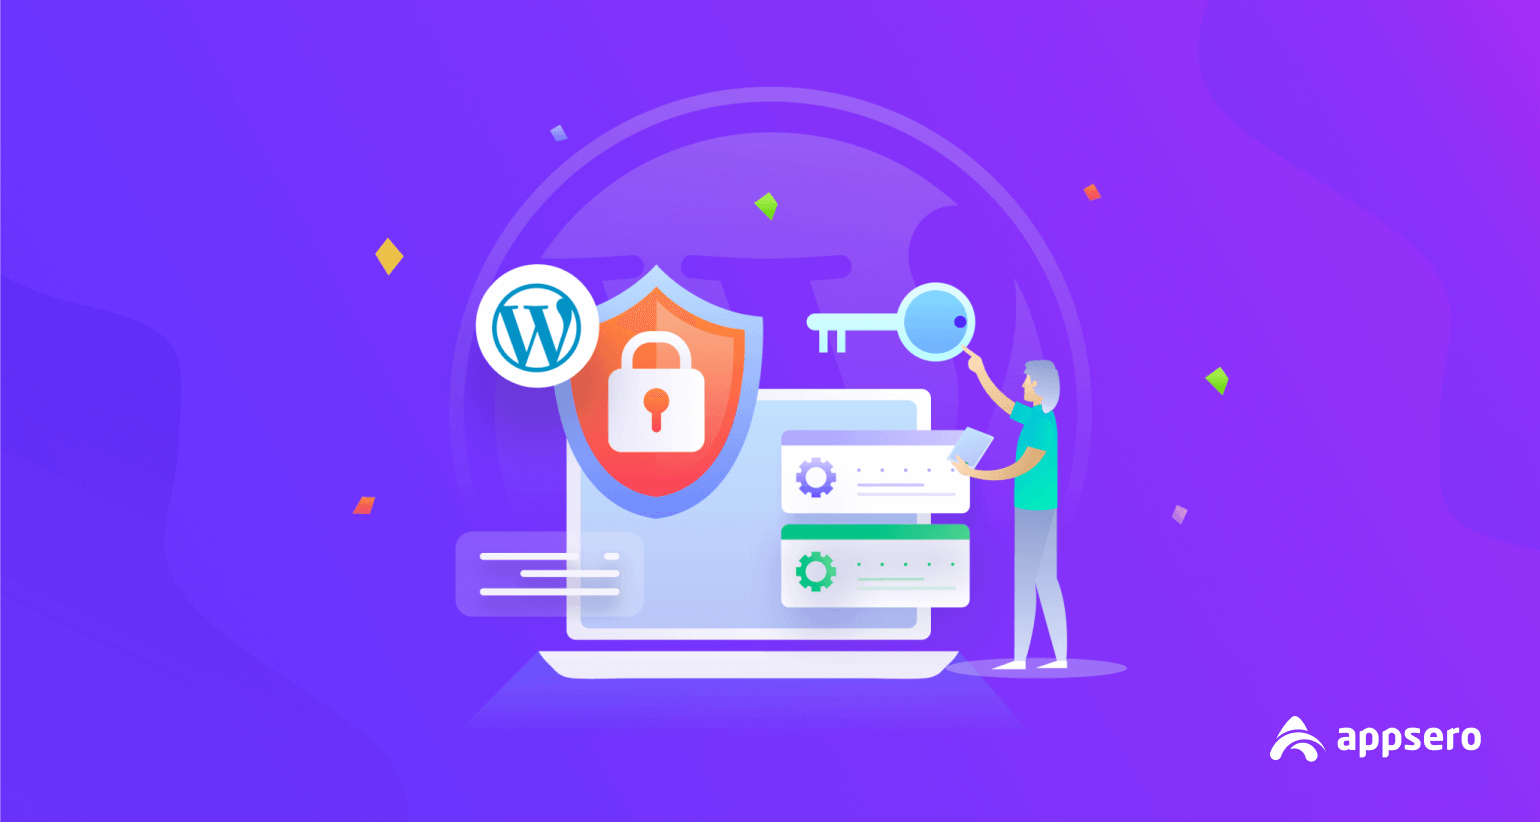 WordPress Security Best Practices: 8 Focusing Strategies to Look-out for 2021